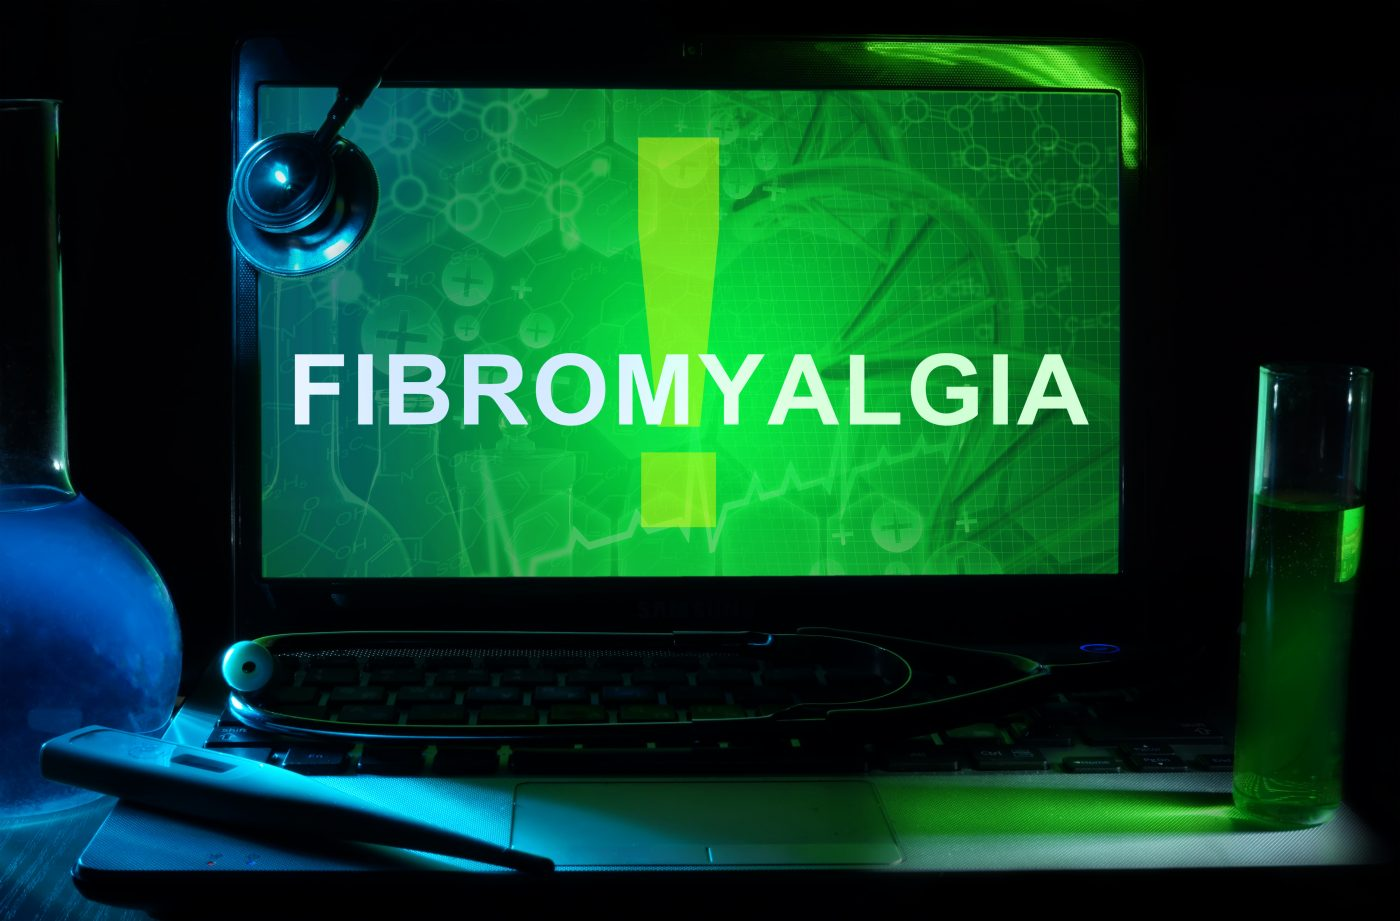 Multiple Measurements Reveal Fibromyalgia Patients Have a Deficit in Attention